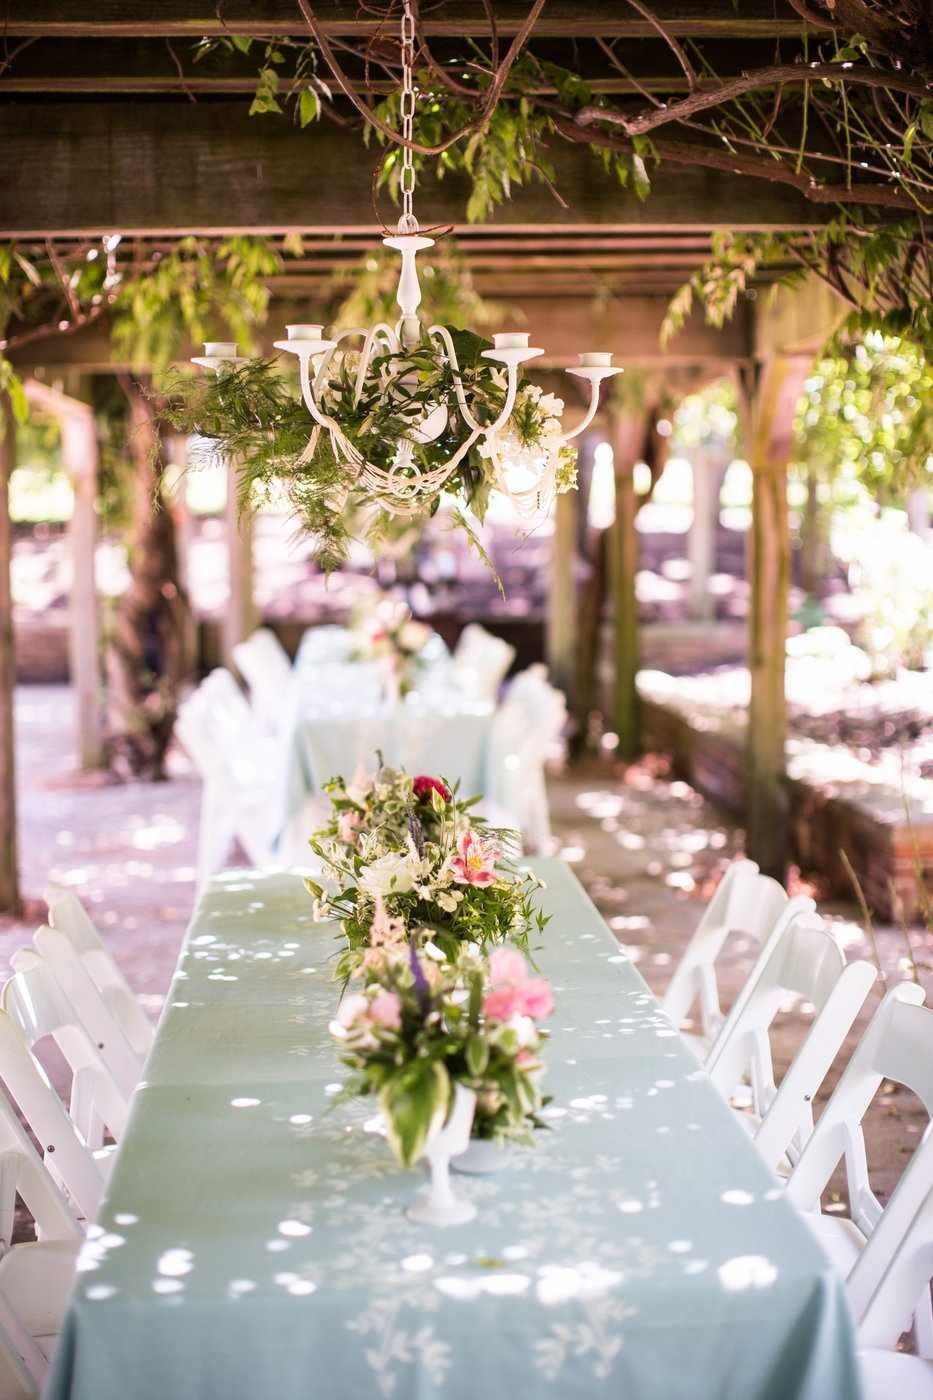 Arbor Seating For A Garden Party Wedding Reception With Floral